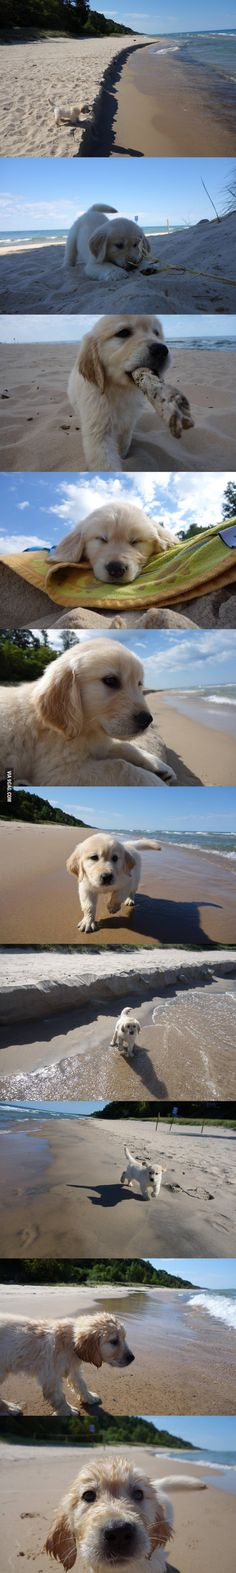 First trip to the beach? That's golden.